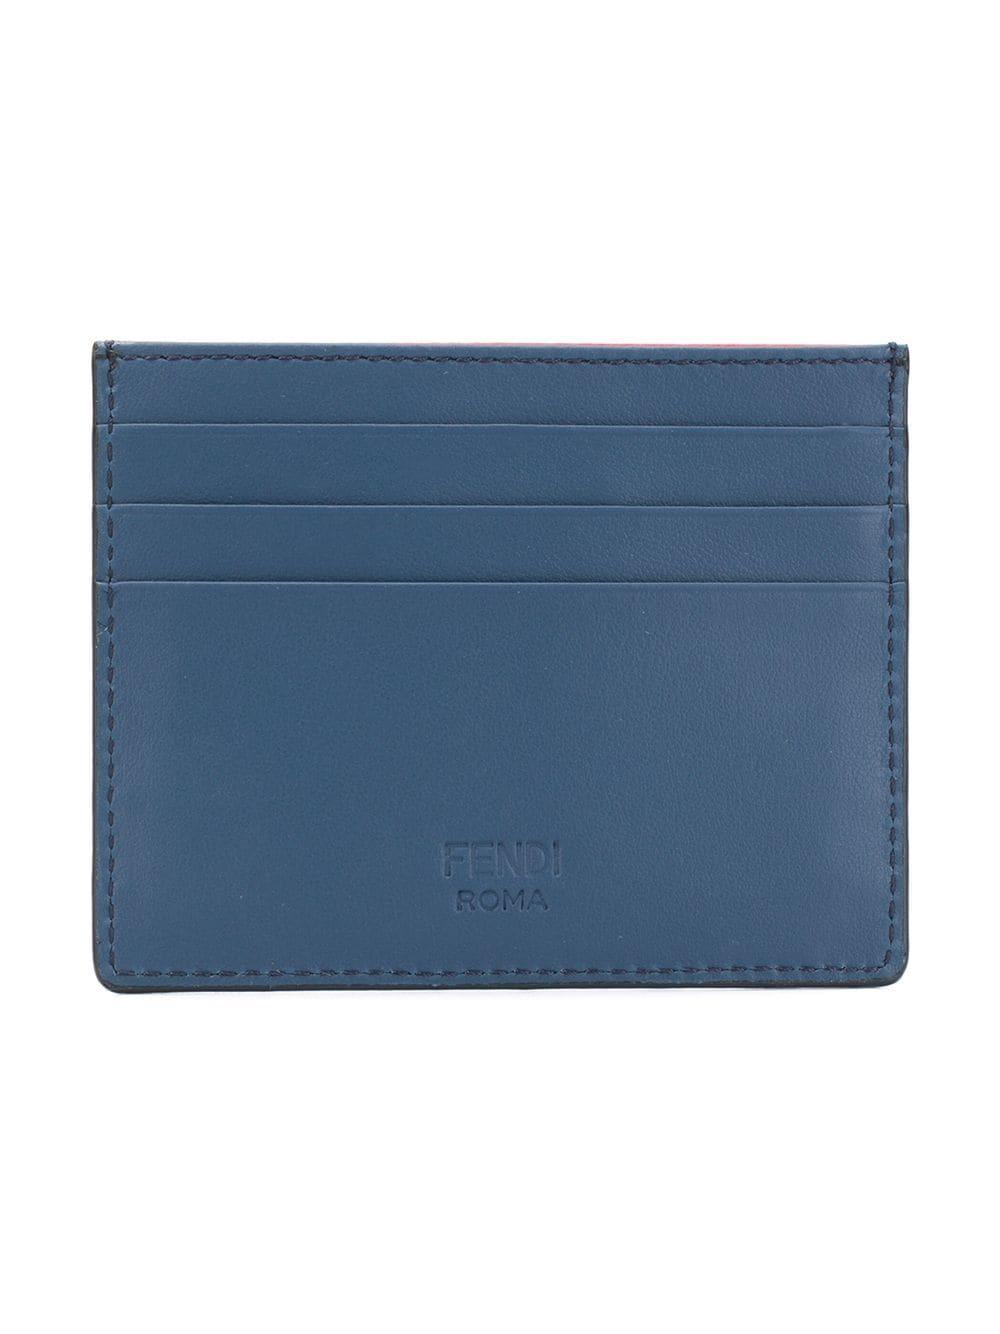 b65d8a37ac4 Lyst - Fendi Bag Bugs Leather Card Case in Blue for Men - Save 26%